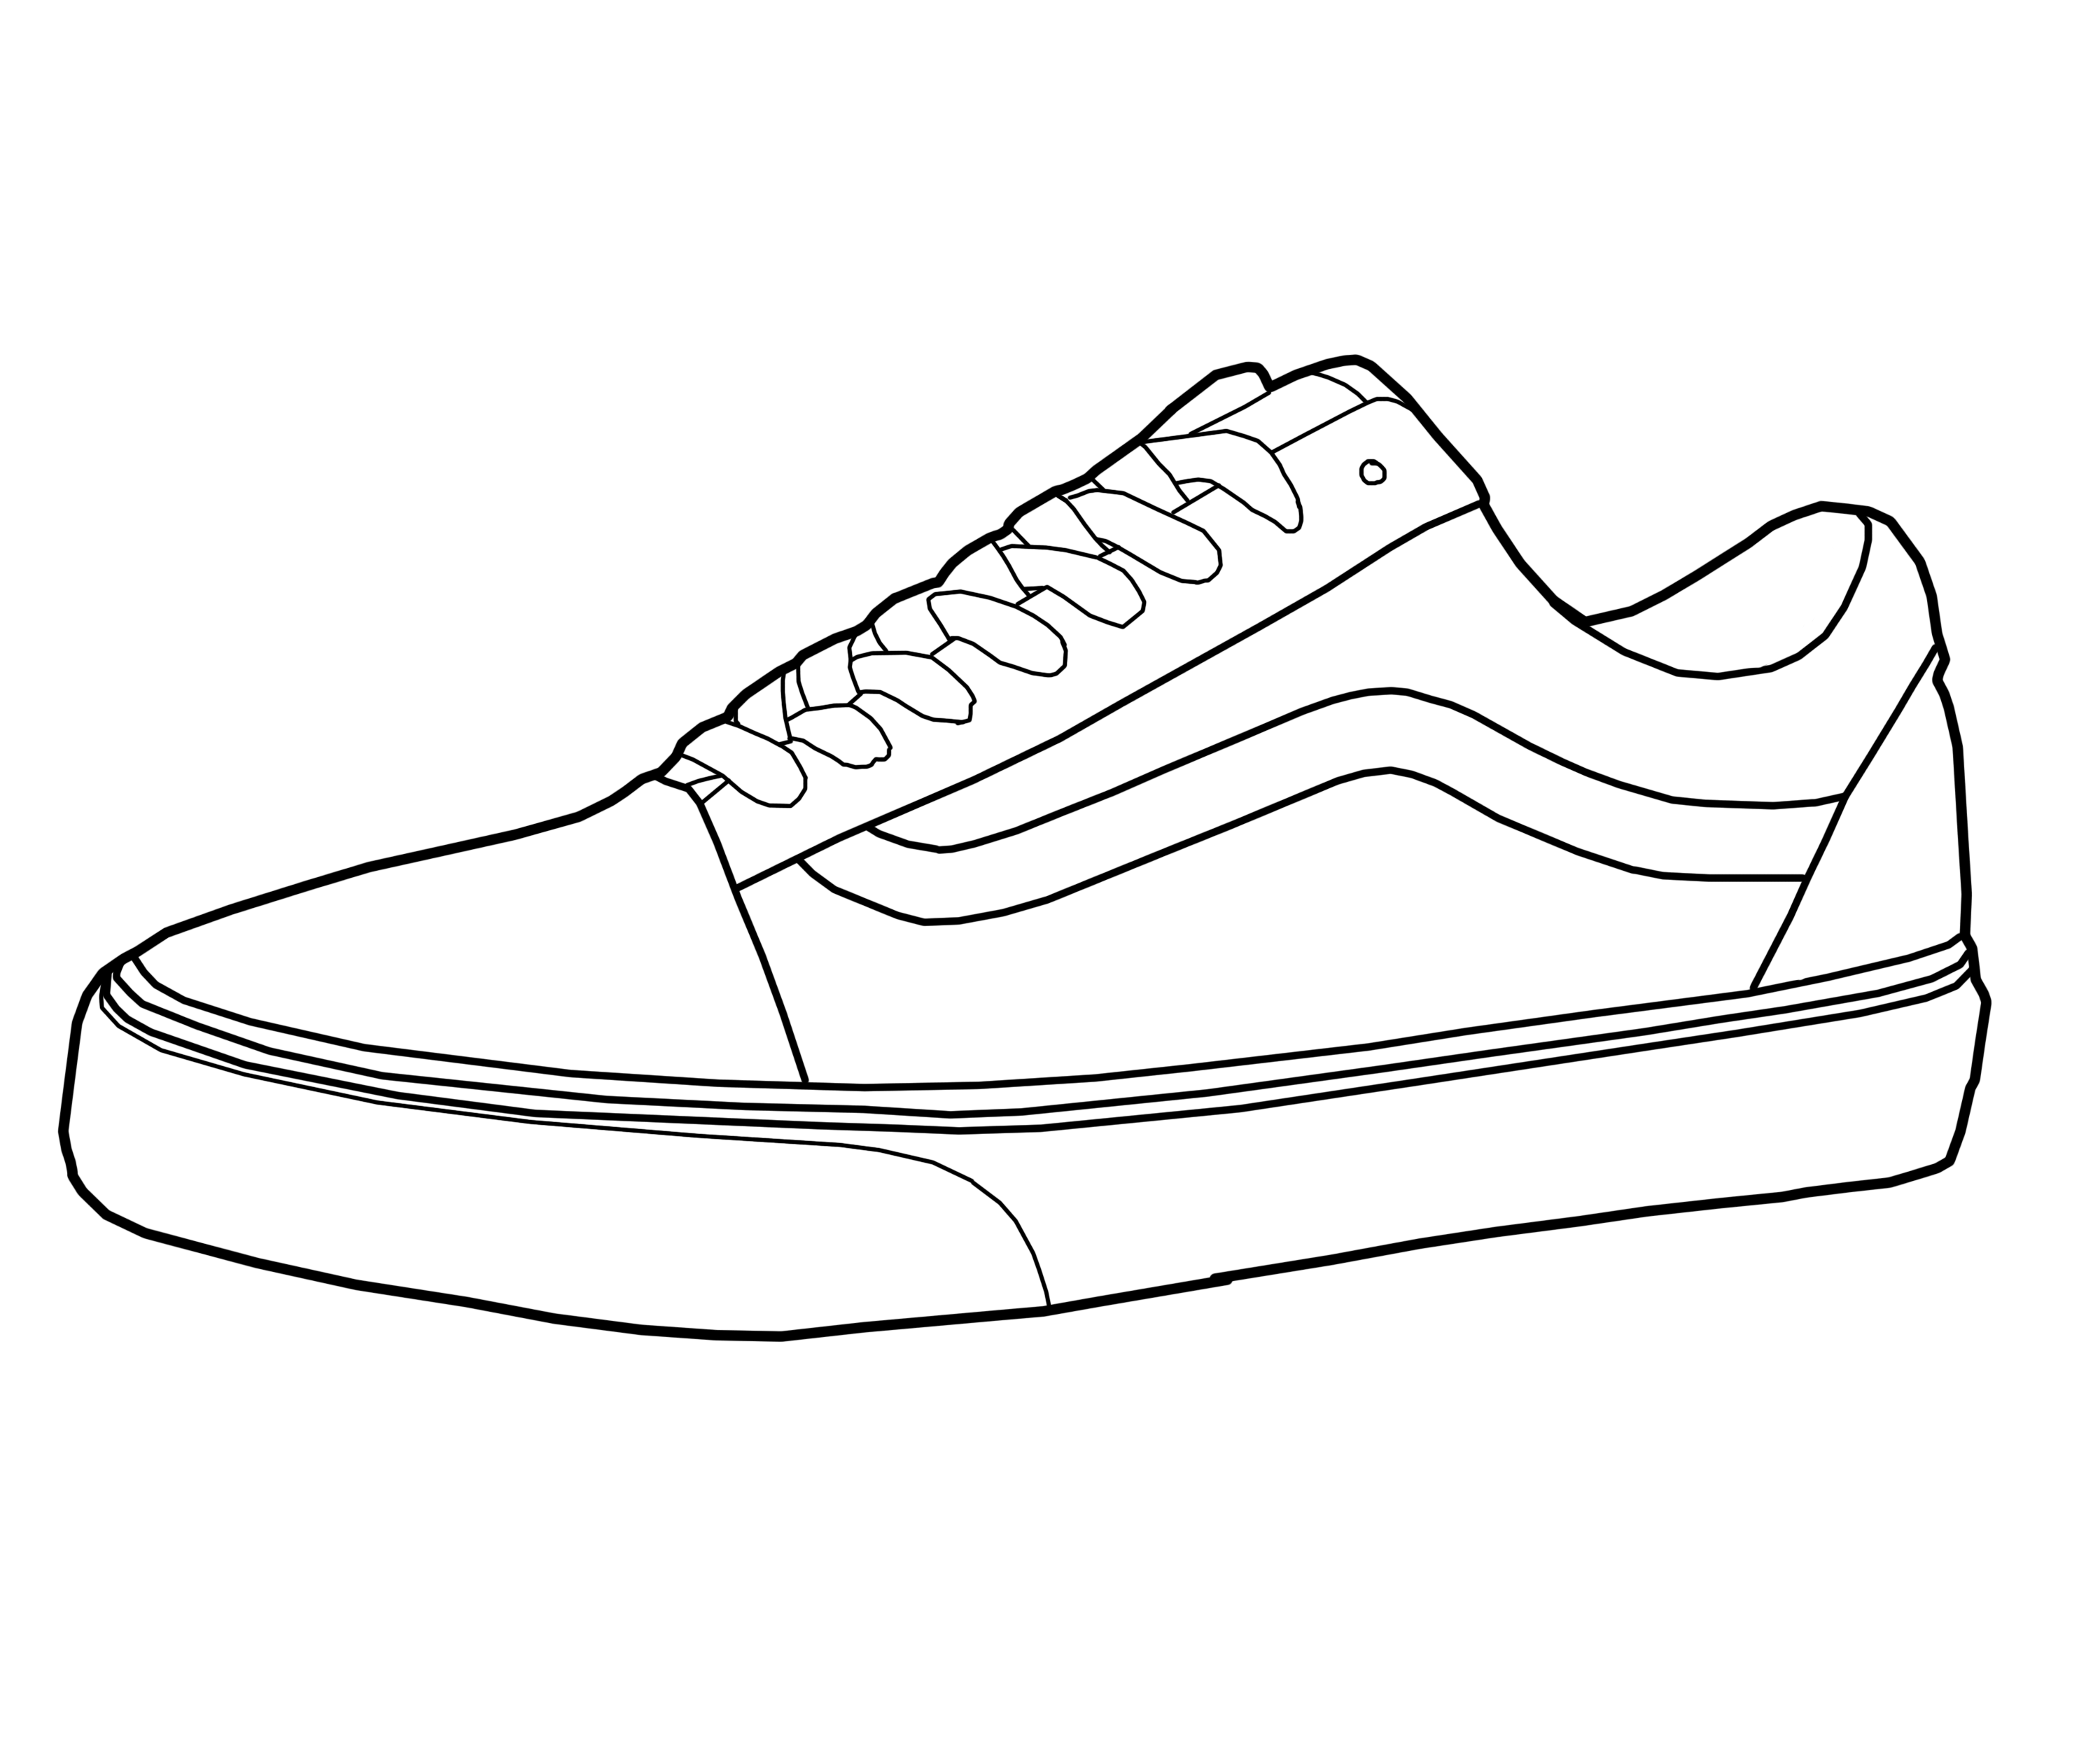 Jordan shoes coloring pages printable - Vans Shoe Drawings